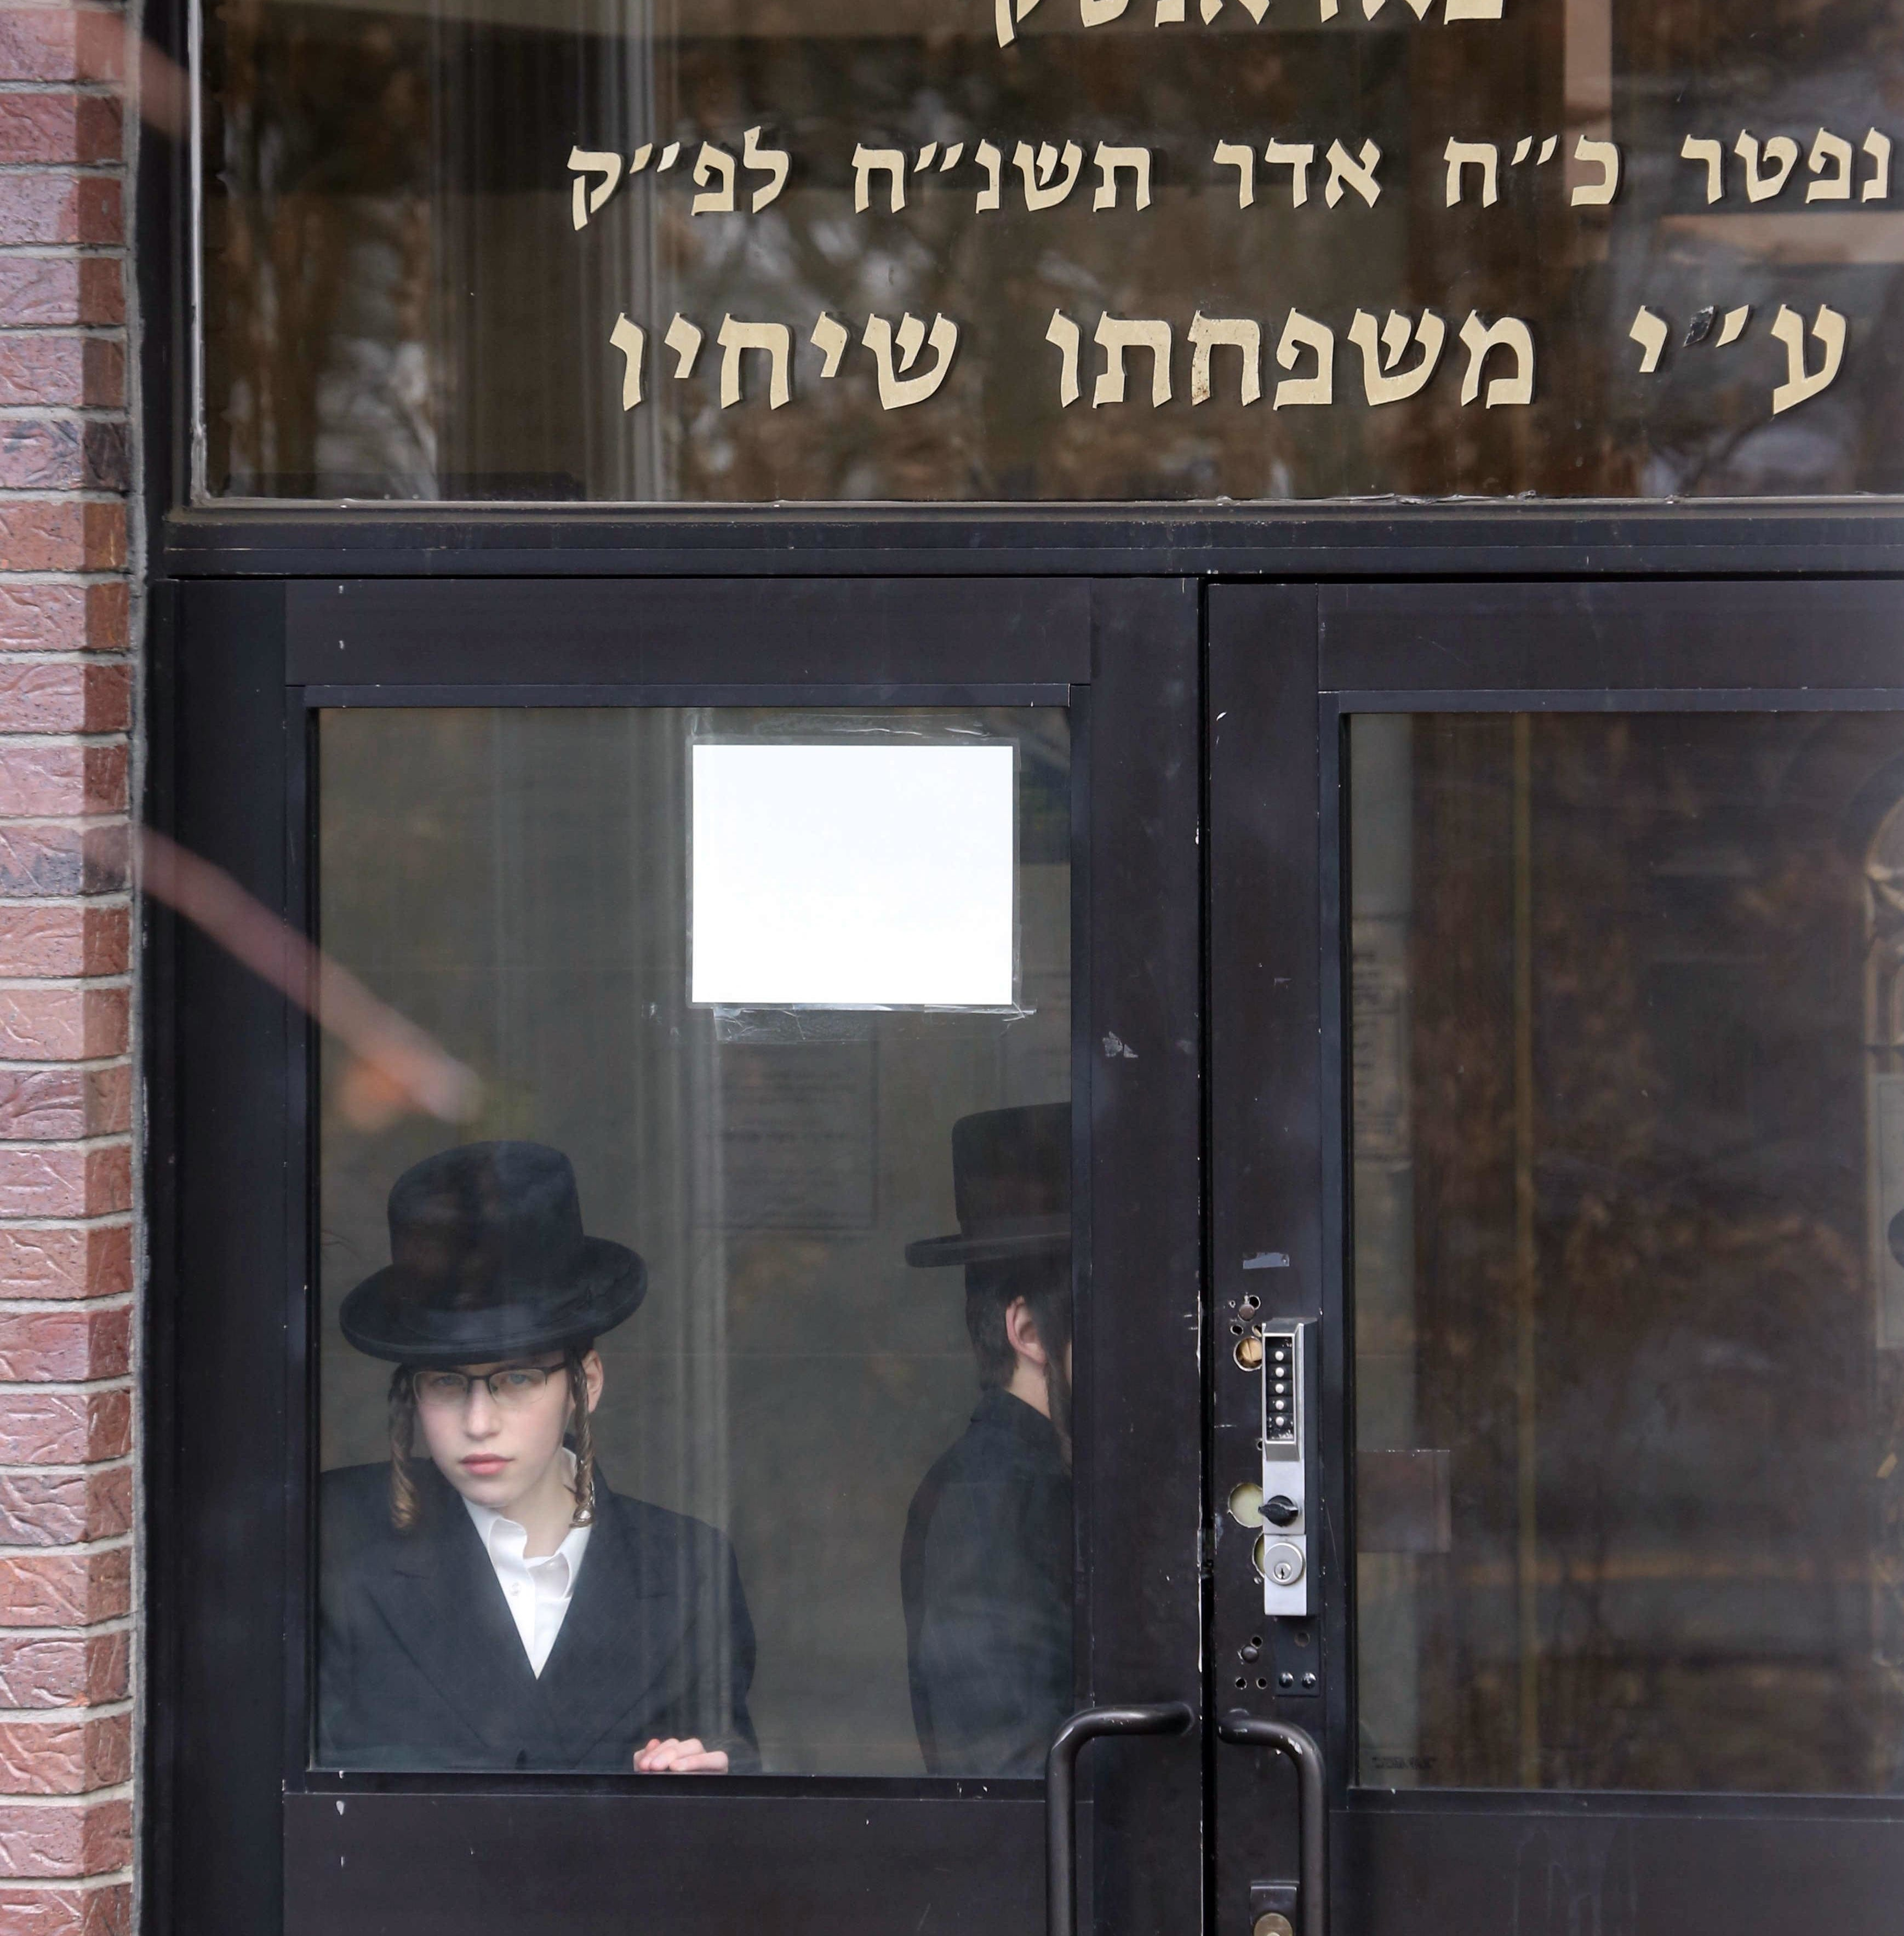 Yeshivas could face closure, eventually, if academics fail state reviews